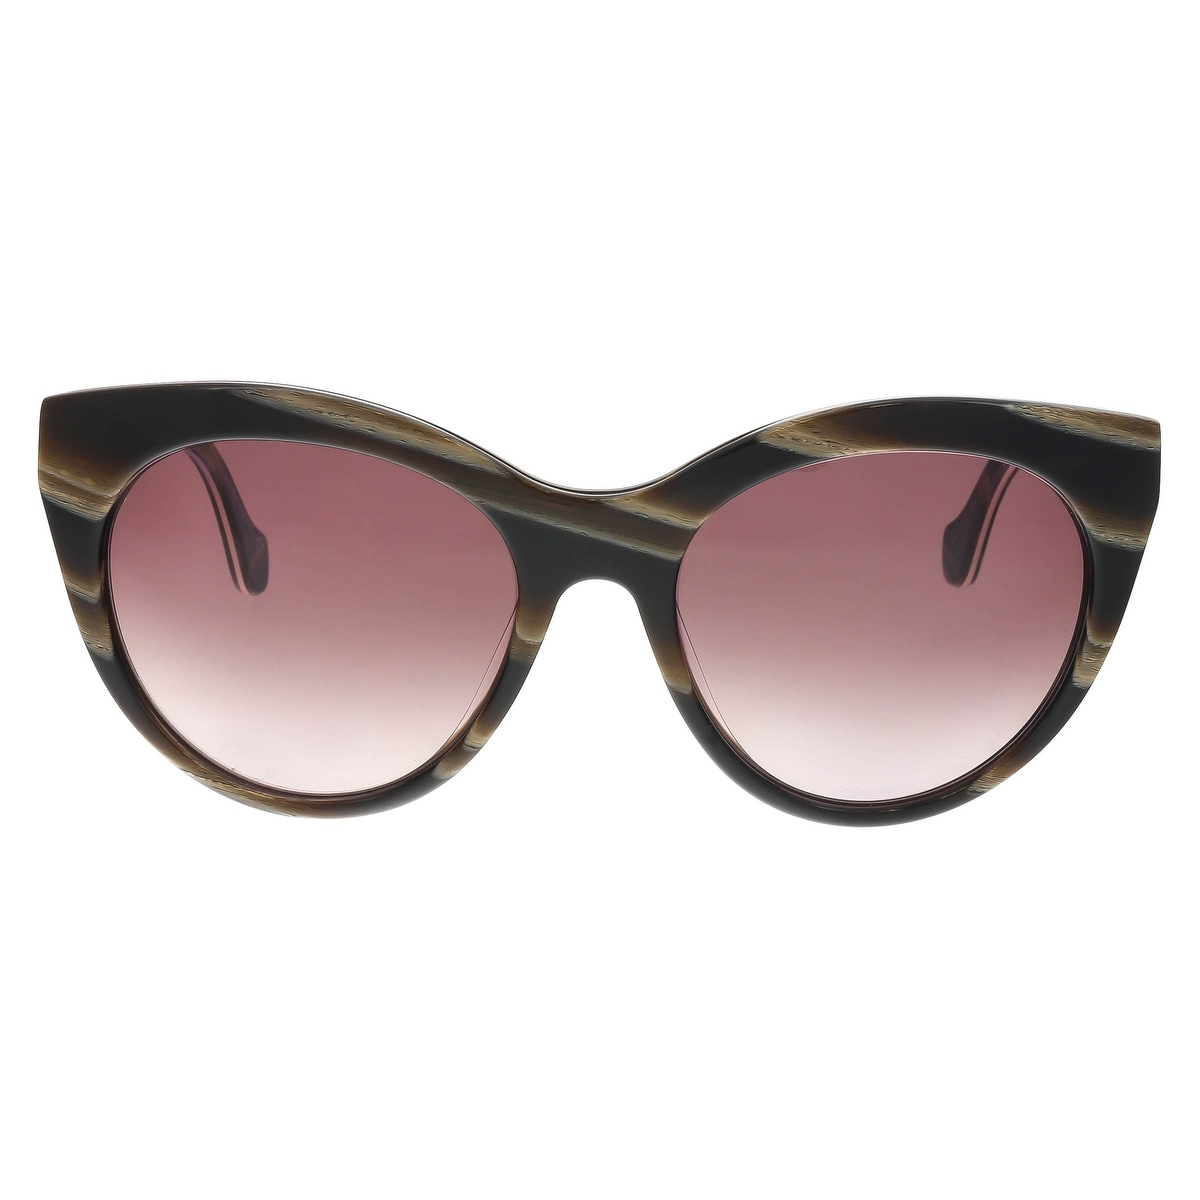 80c37416b2c6 Shop Balenciaga BA0051/S 62Z Brown/Tan Cat Eye Sunglasses - 54-18-140 -  Free Shipping Today - Overstock - 19833265